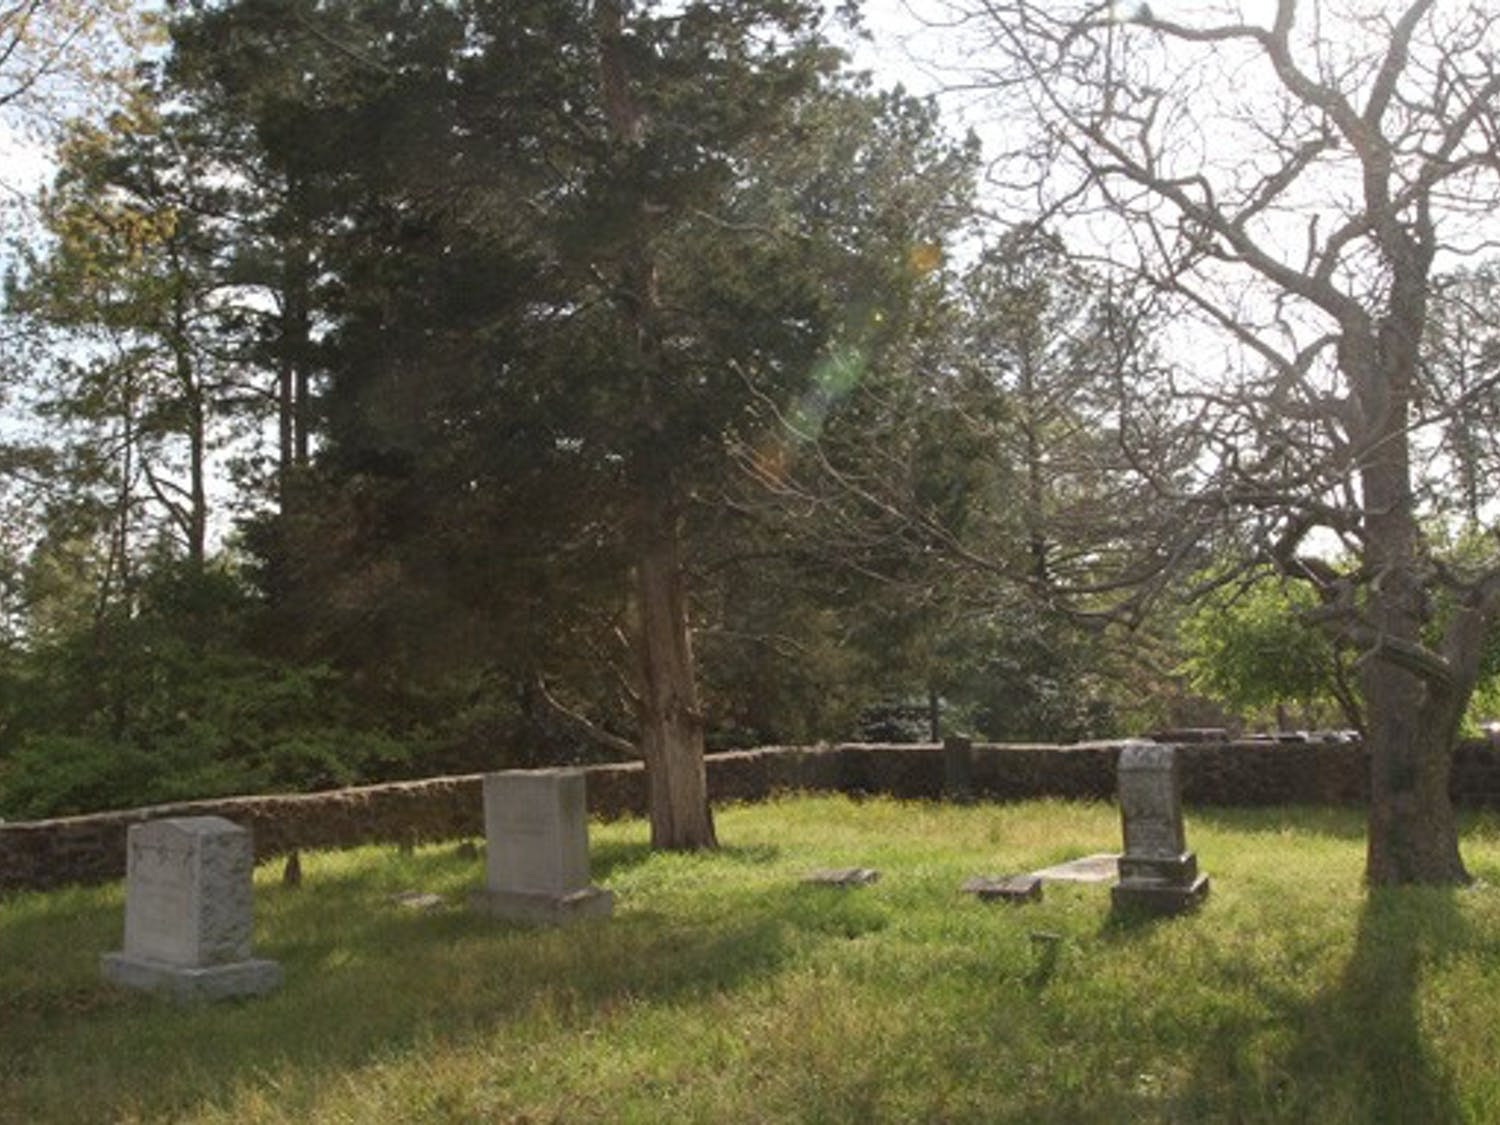 The TJ Rigsbee Family Grave Yard, located in the Blue Zone, serves as a reminder of the family who had owned land that would become West Campus.